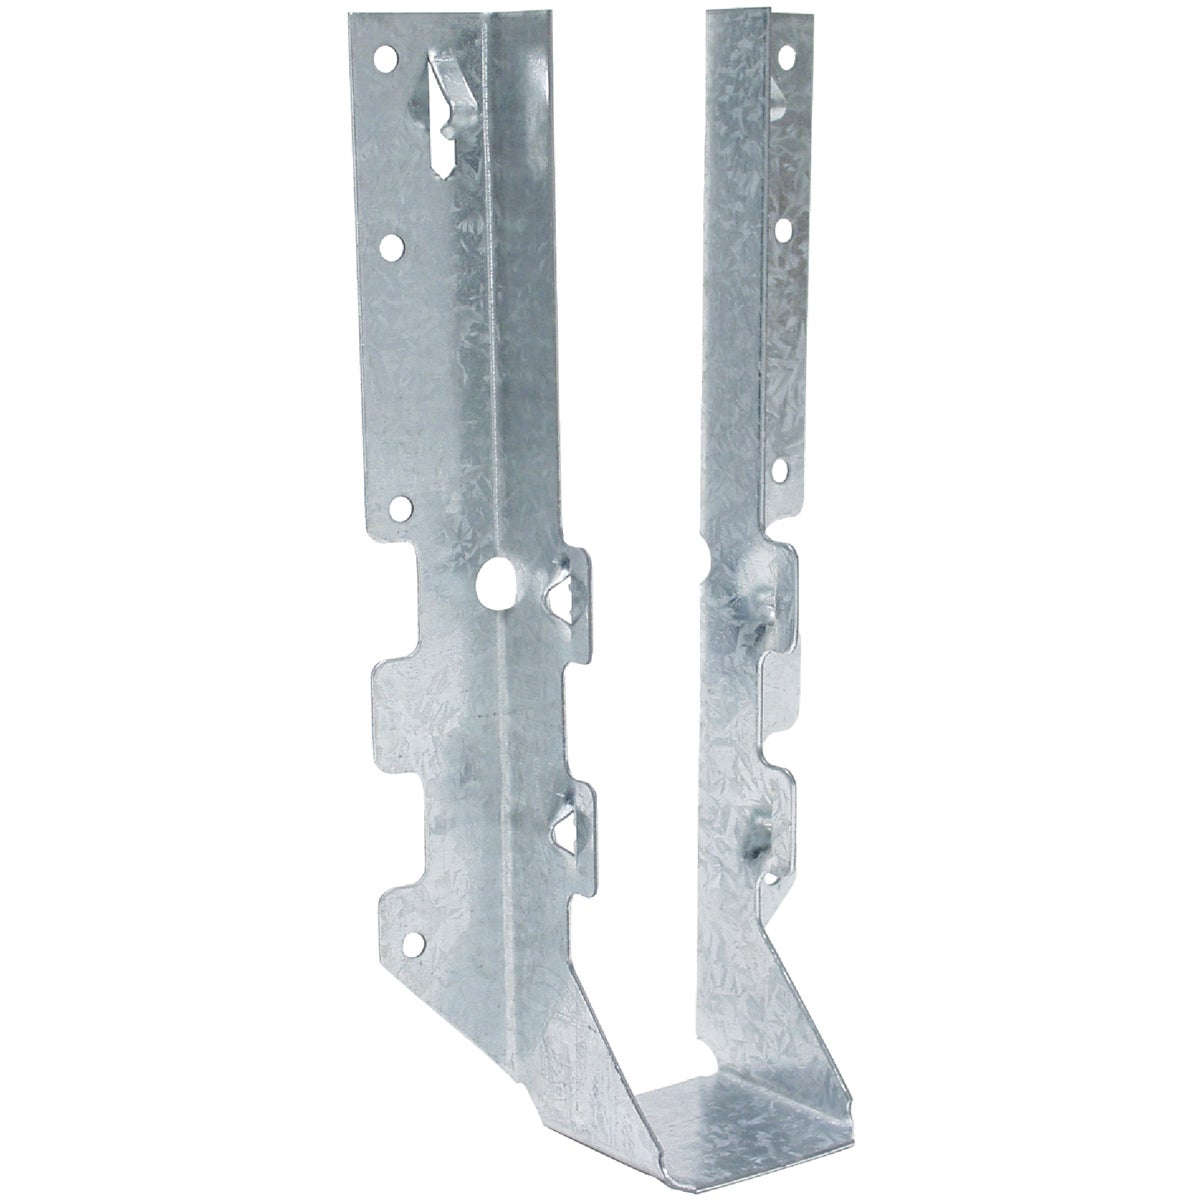 2X10 JOIST HANGER - LUS210 by Simpson Strong Tie